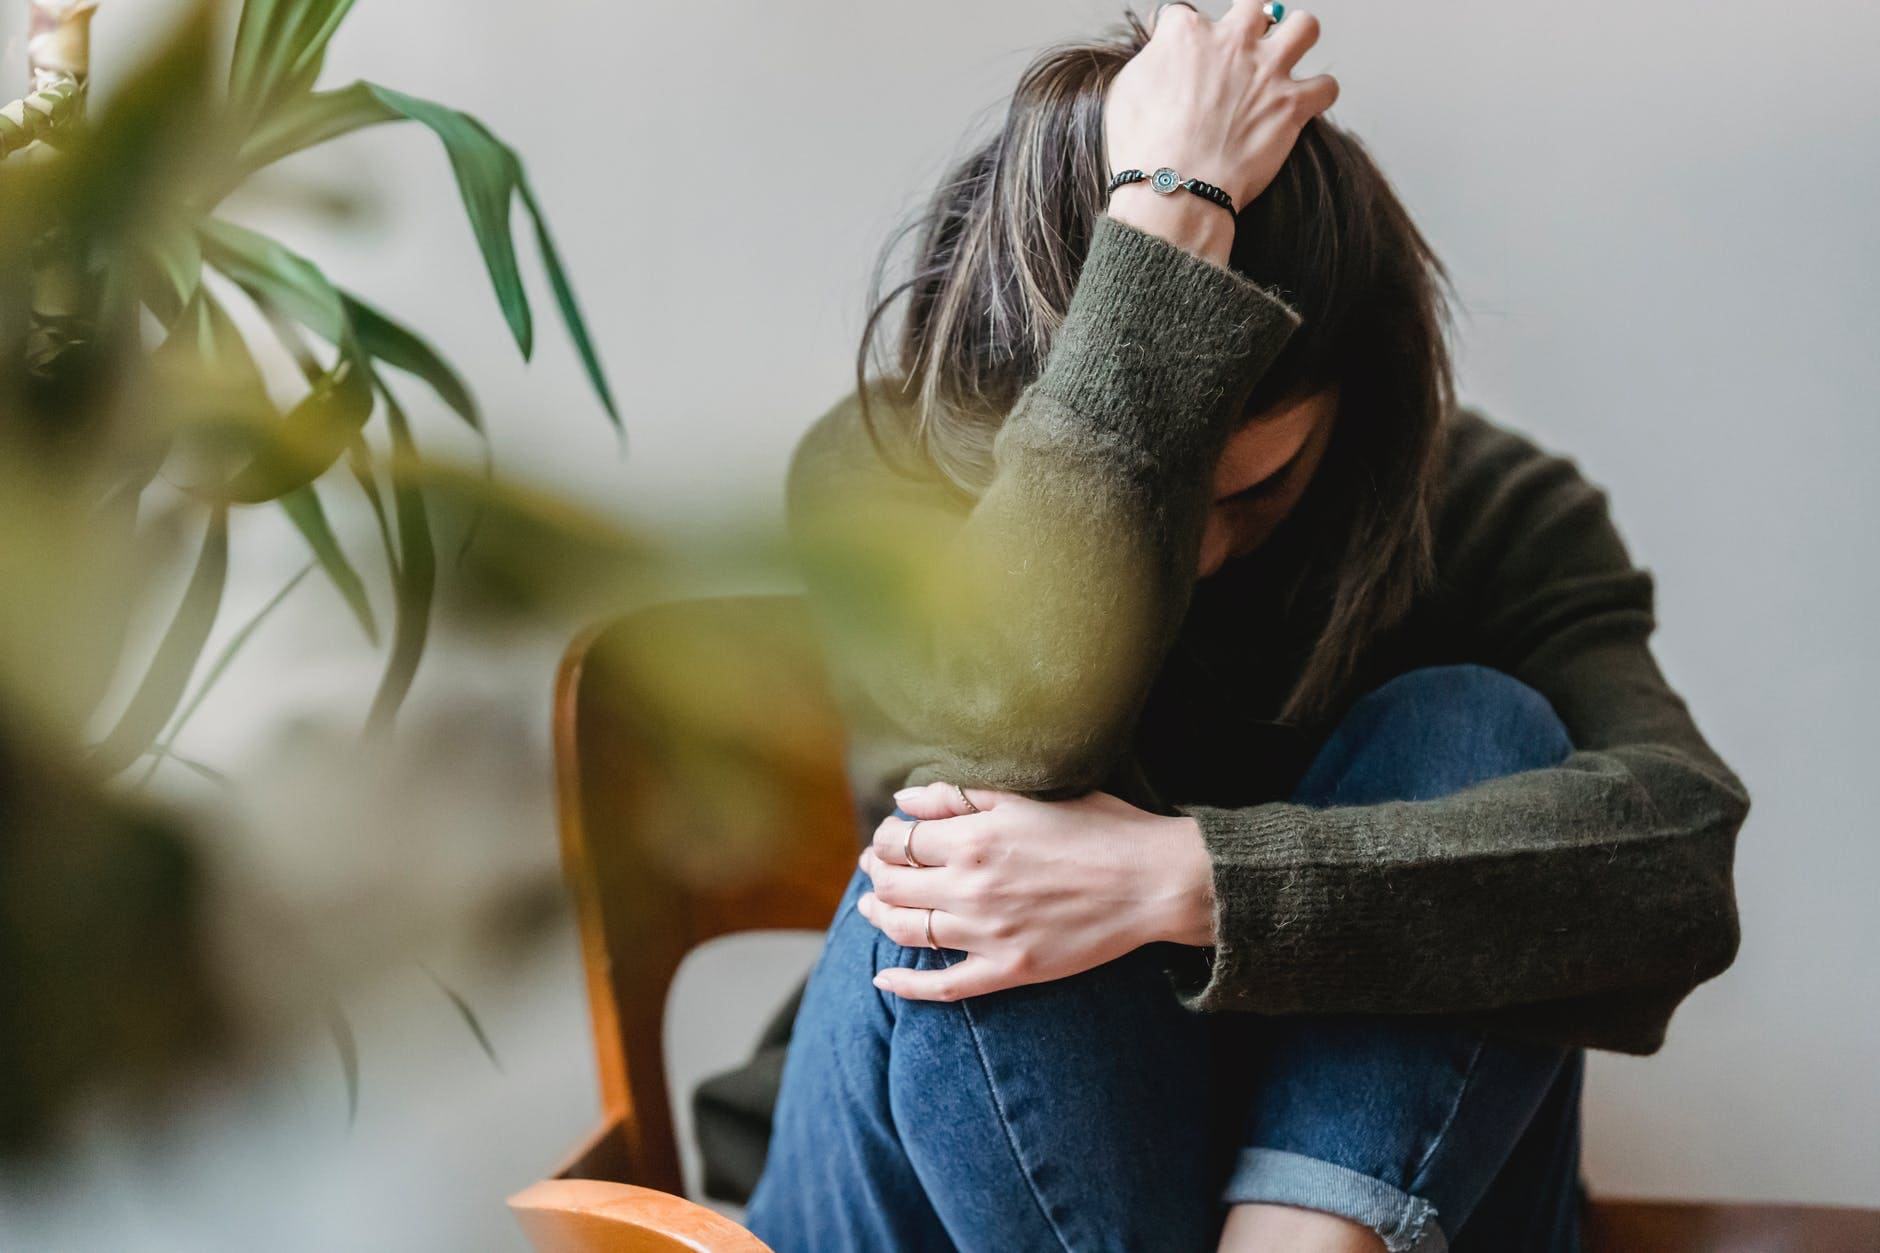 The best remedy for anxiety and stress with herbs